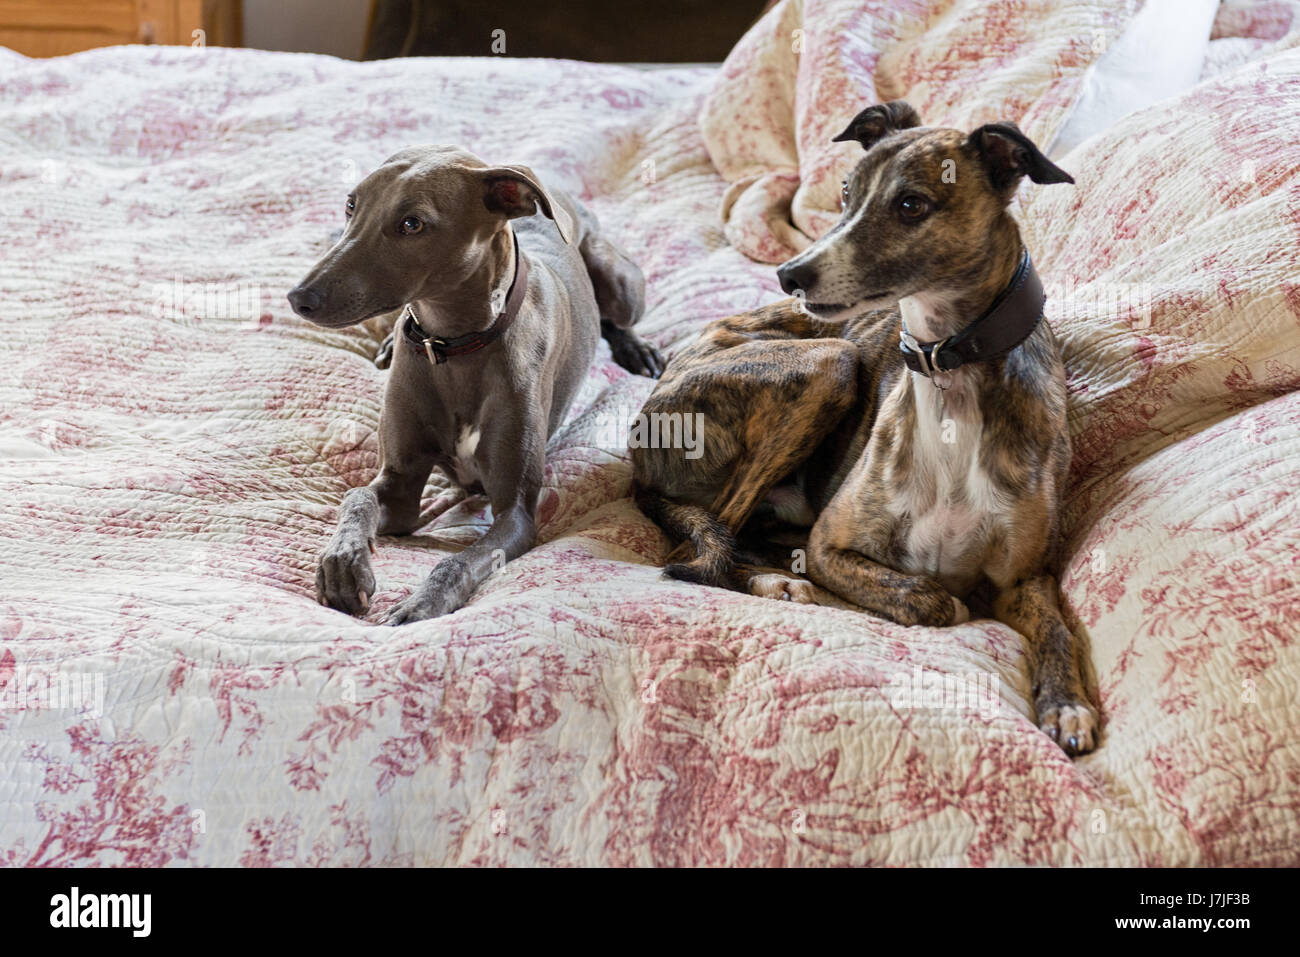 Pair of smooth-coated lurchers on a quilted toile de jouy bed cover - Stock Image